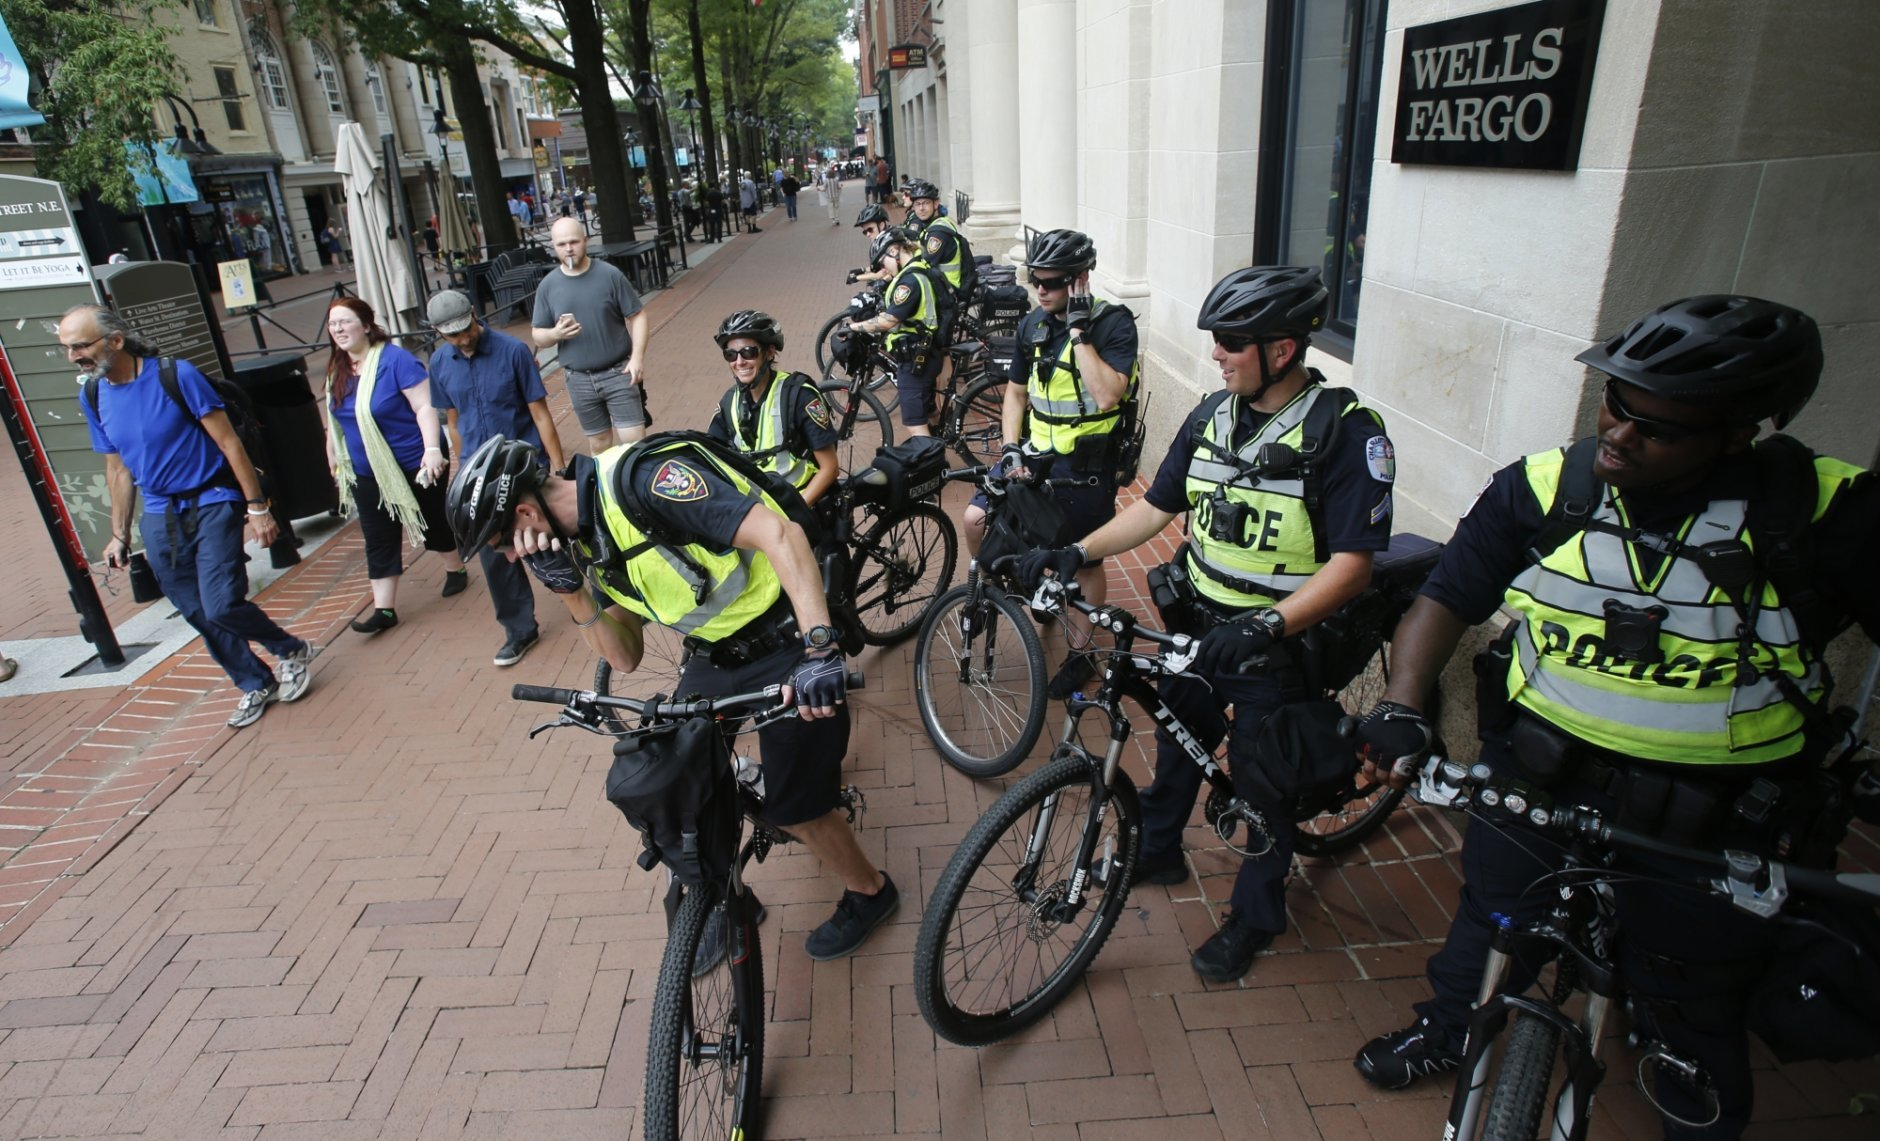 A Police bike patrol takes a break in the downtown area in anticipation of the anniversary of last year's Unite the Right rally in Charlottesville, Va., Saturday, Aug. 11, 2018. State and local authorities framed the weekend's heightened security as a necessary precaution. (AP Photo/Steve Helber)